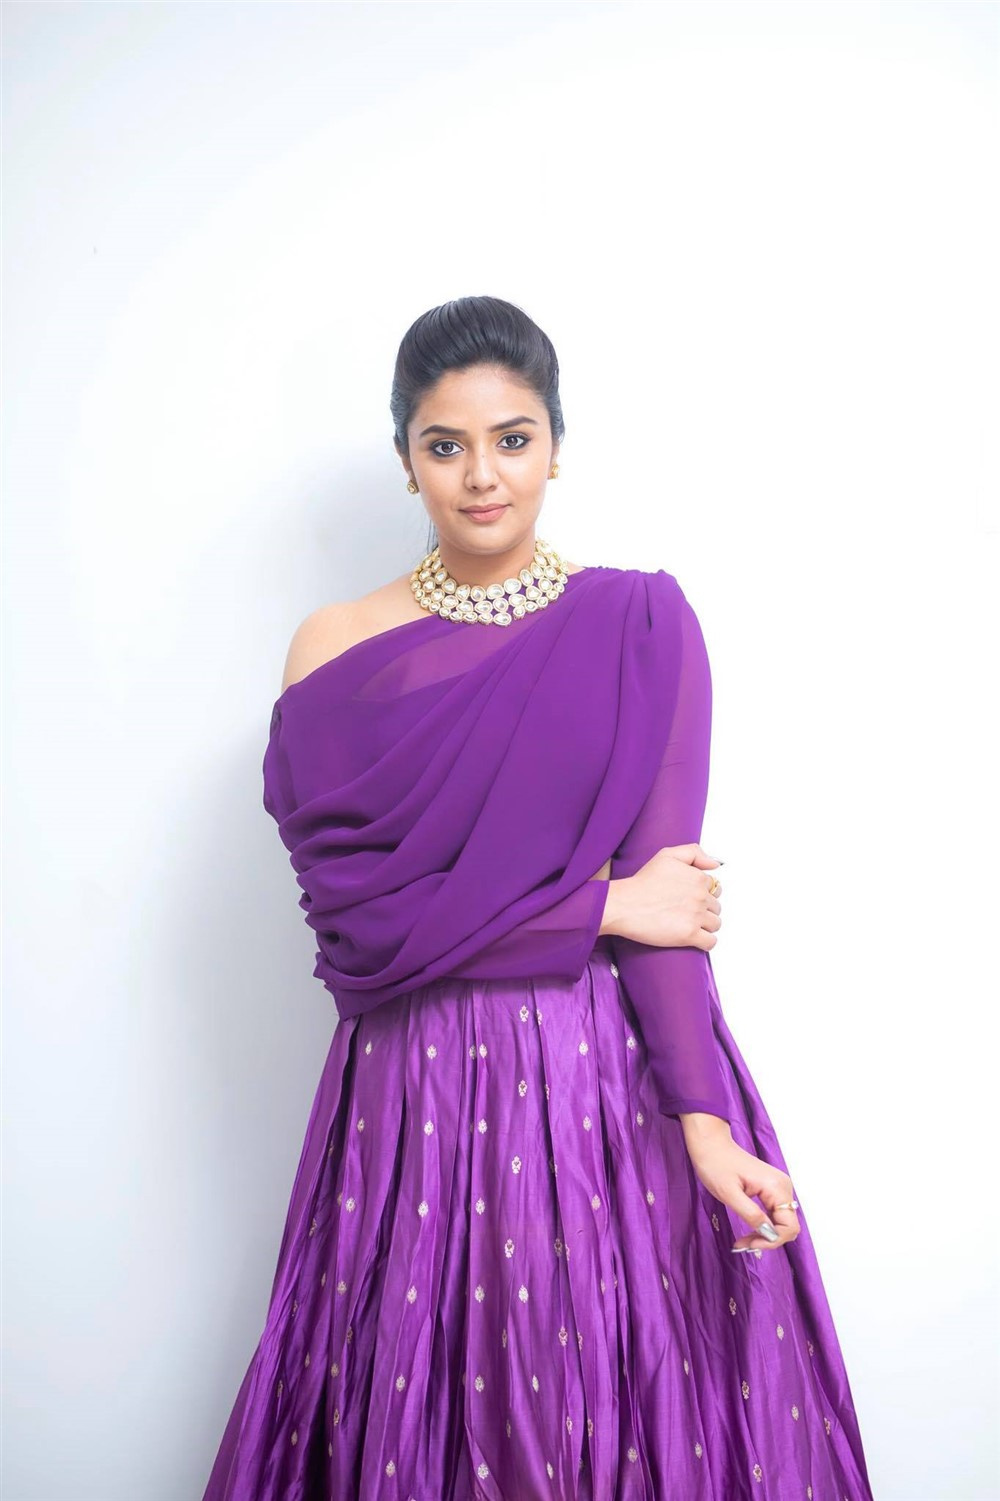 anchor-sreemukhi-recent-photoshoot-pics-3778d66